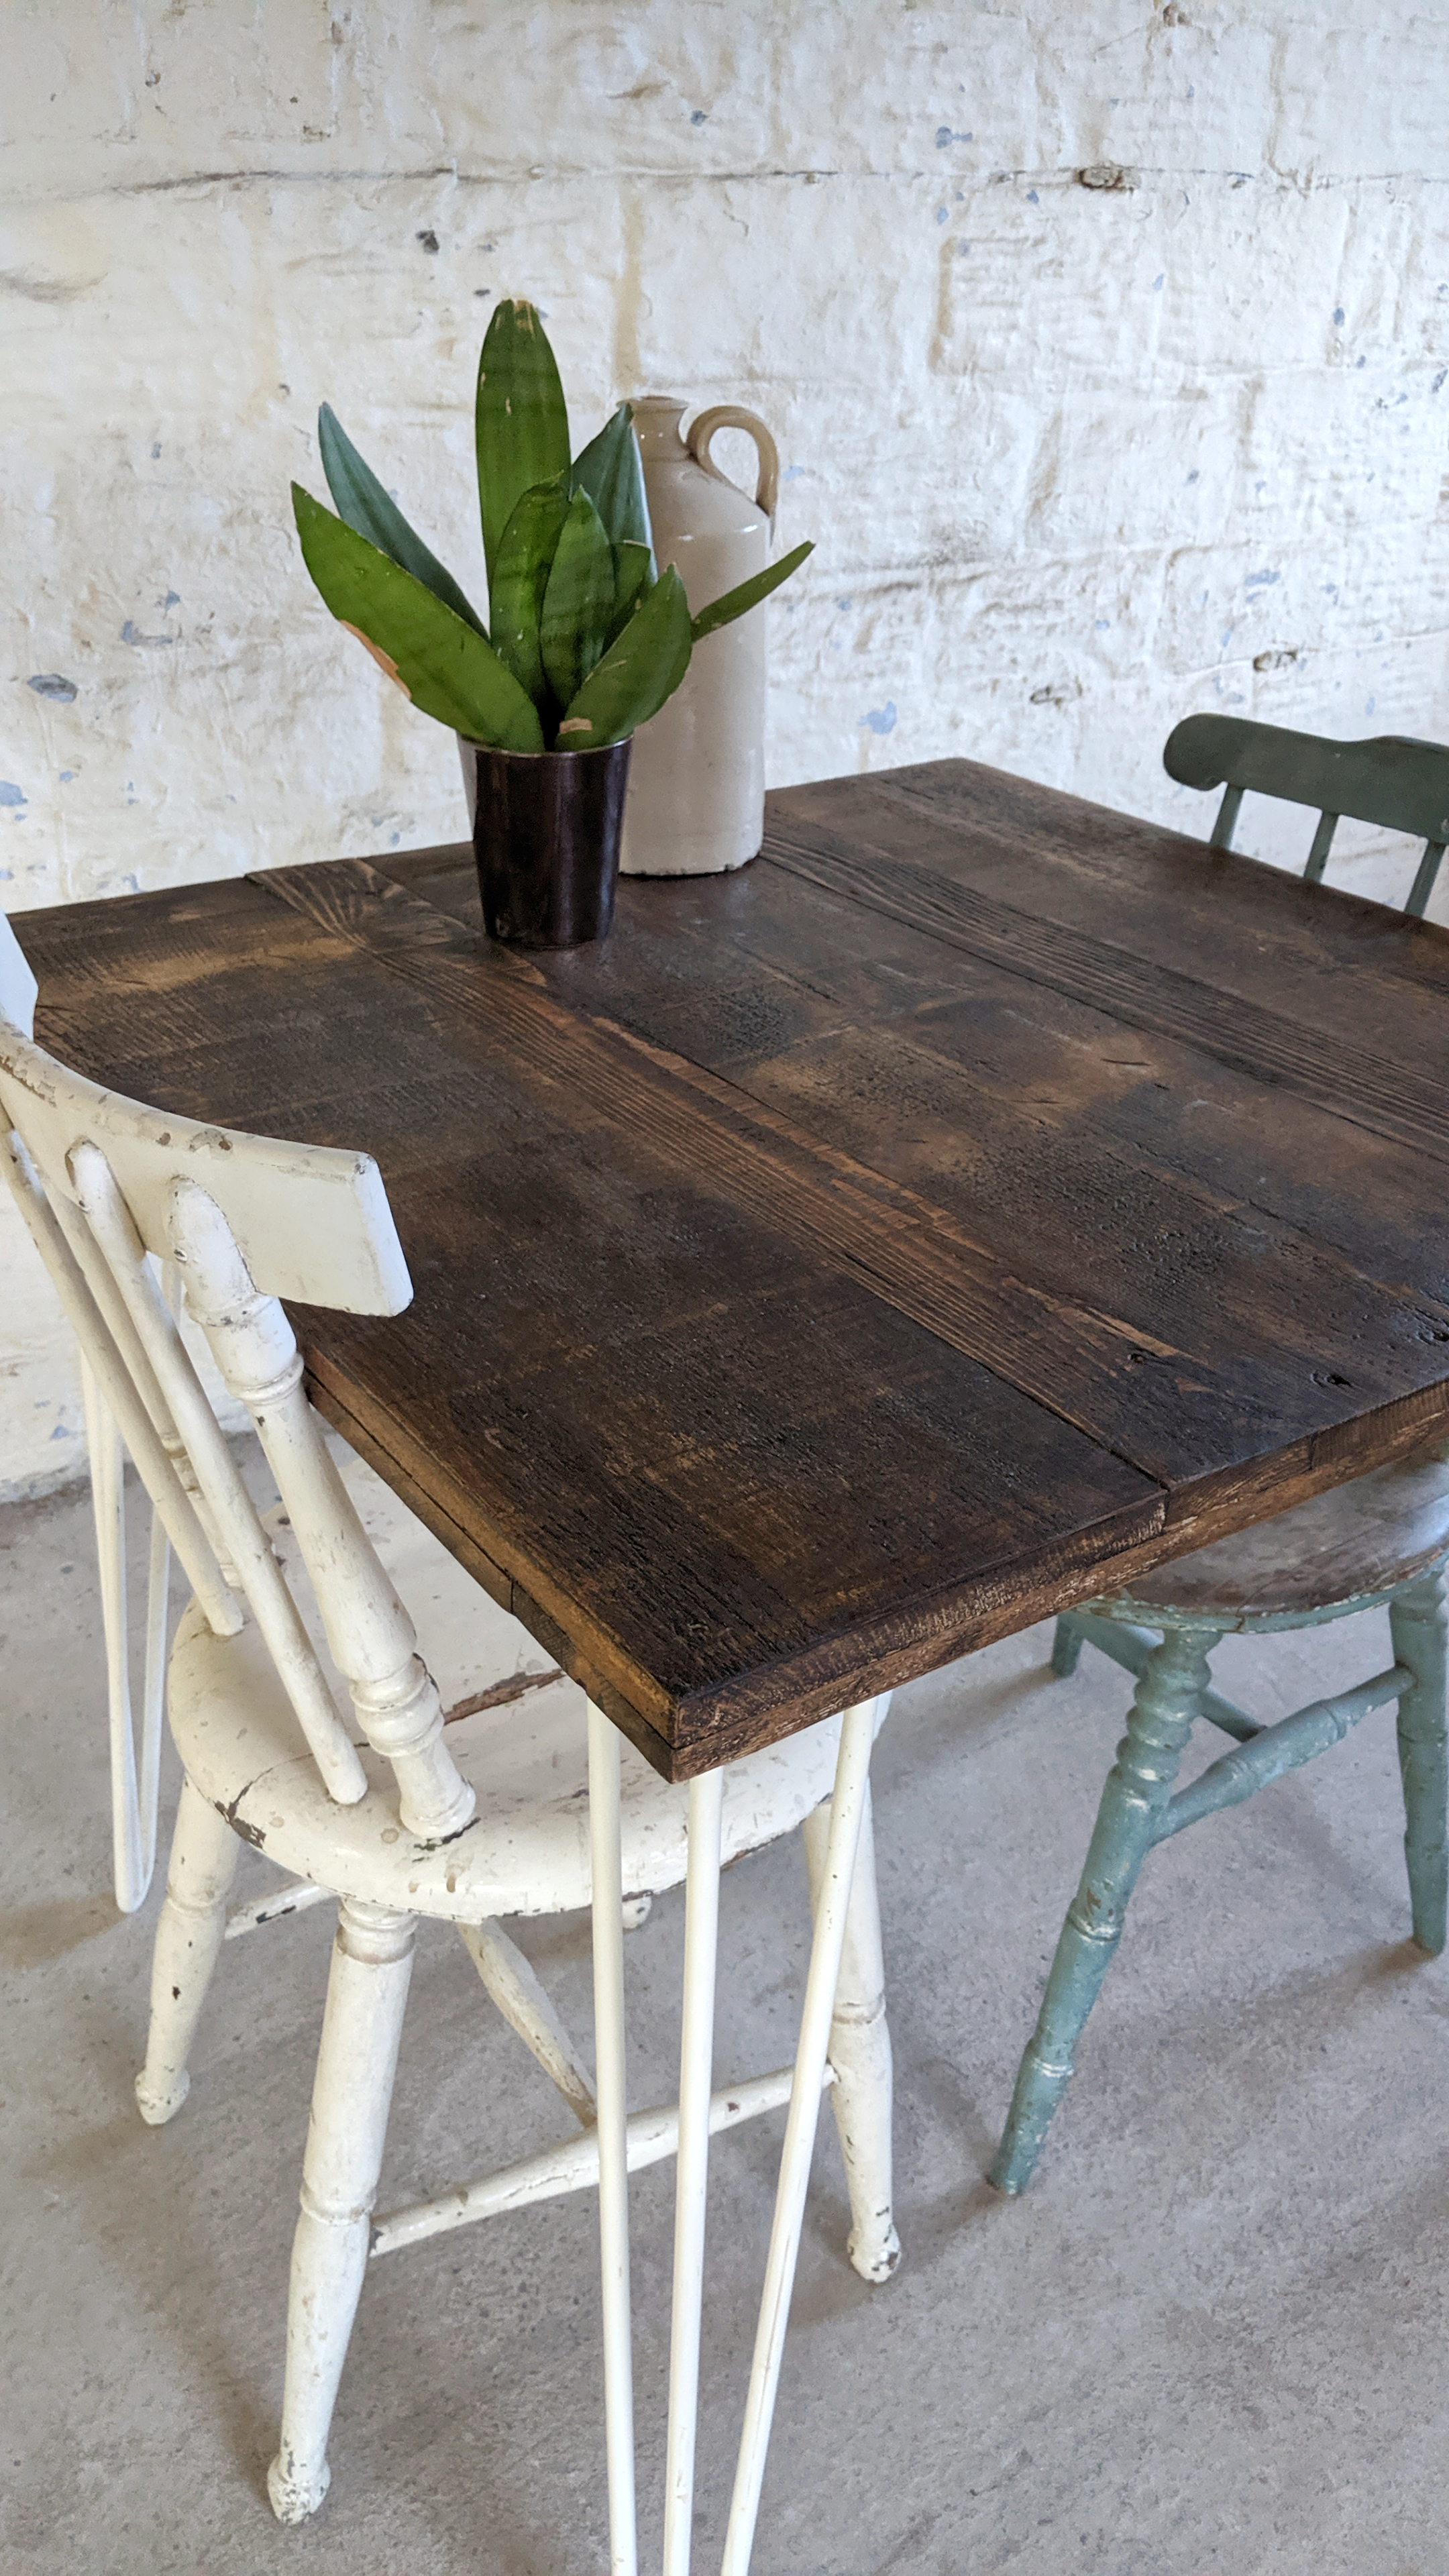 Reclaimed Wood Bistro Table Restaurant Dining Bar Table In 2020 Reclaimed Wood Dining Table Bistro Table Reclaimed Wood Paneling